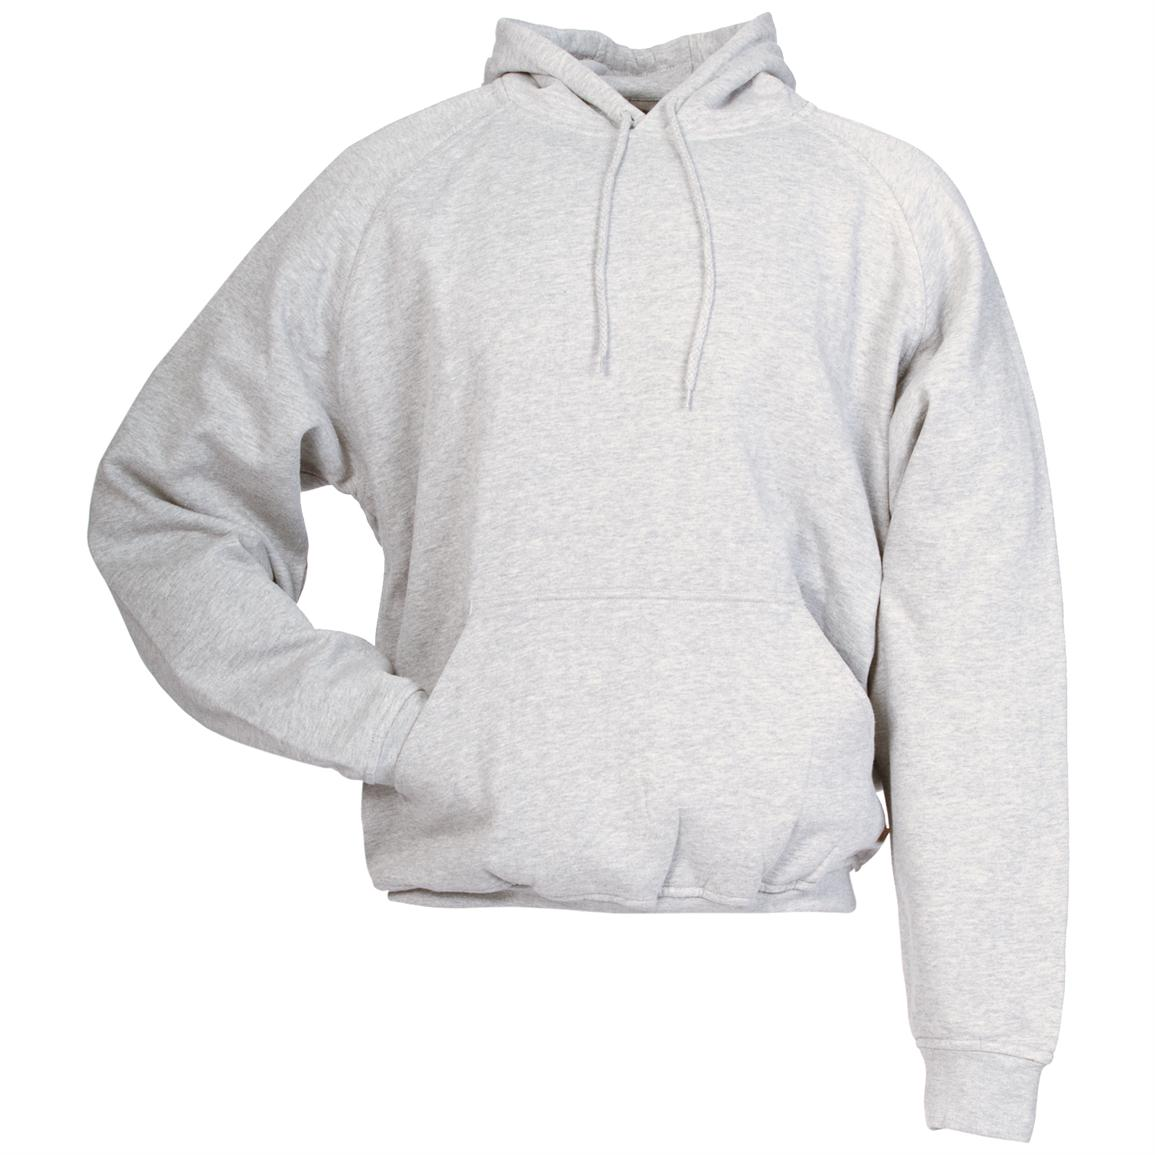 Berne Apparel® Thermal Lined Fleece Hooded Pullover, Heather Grey